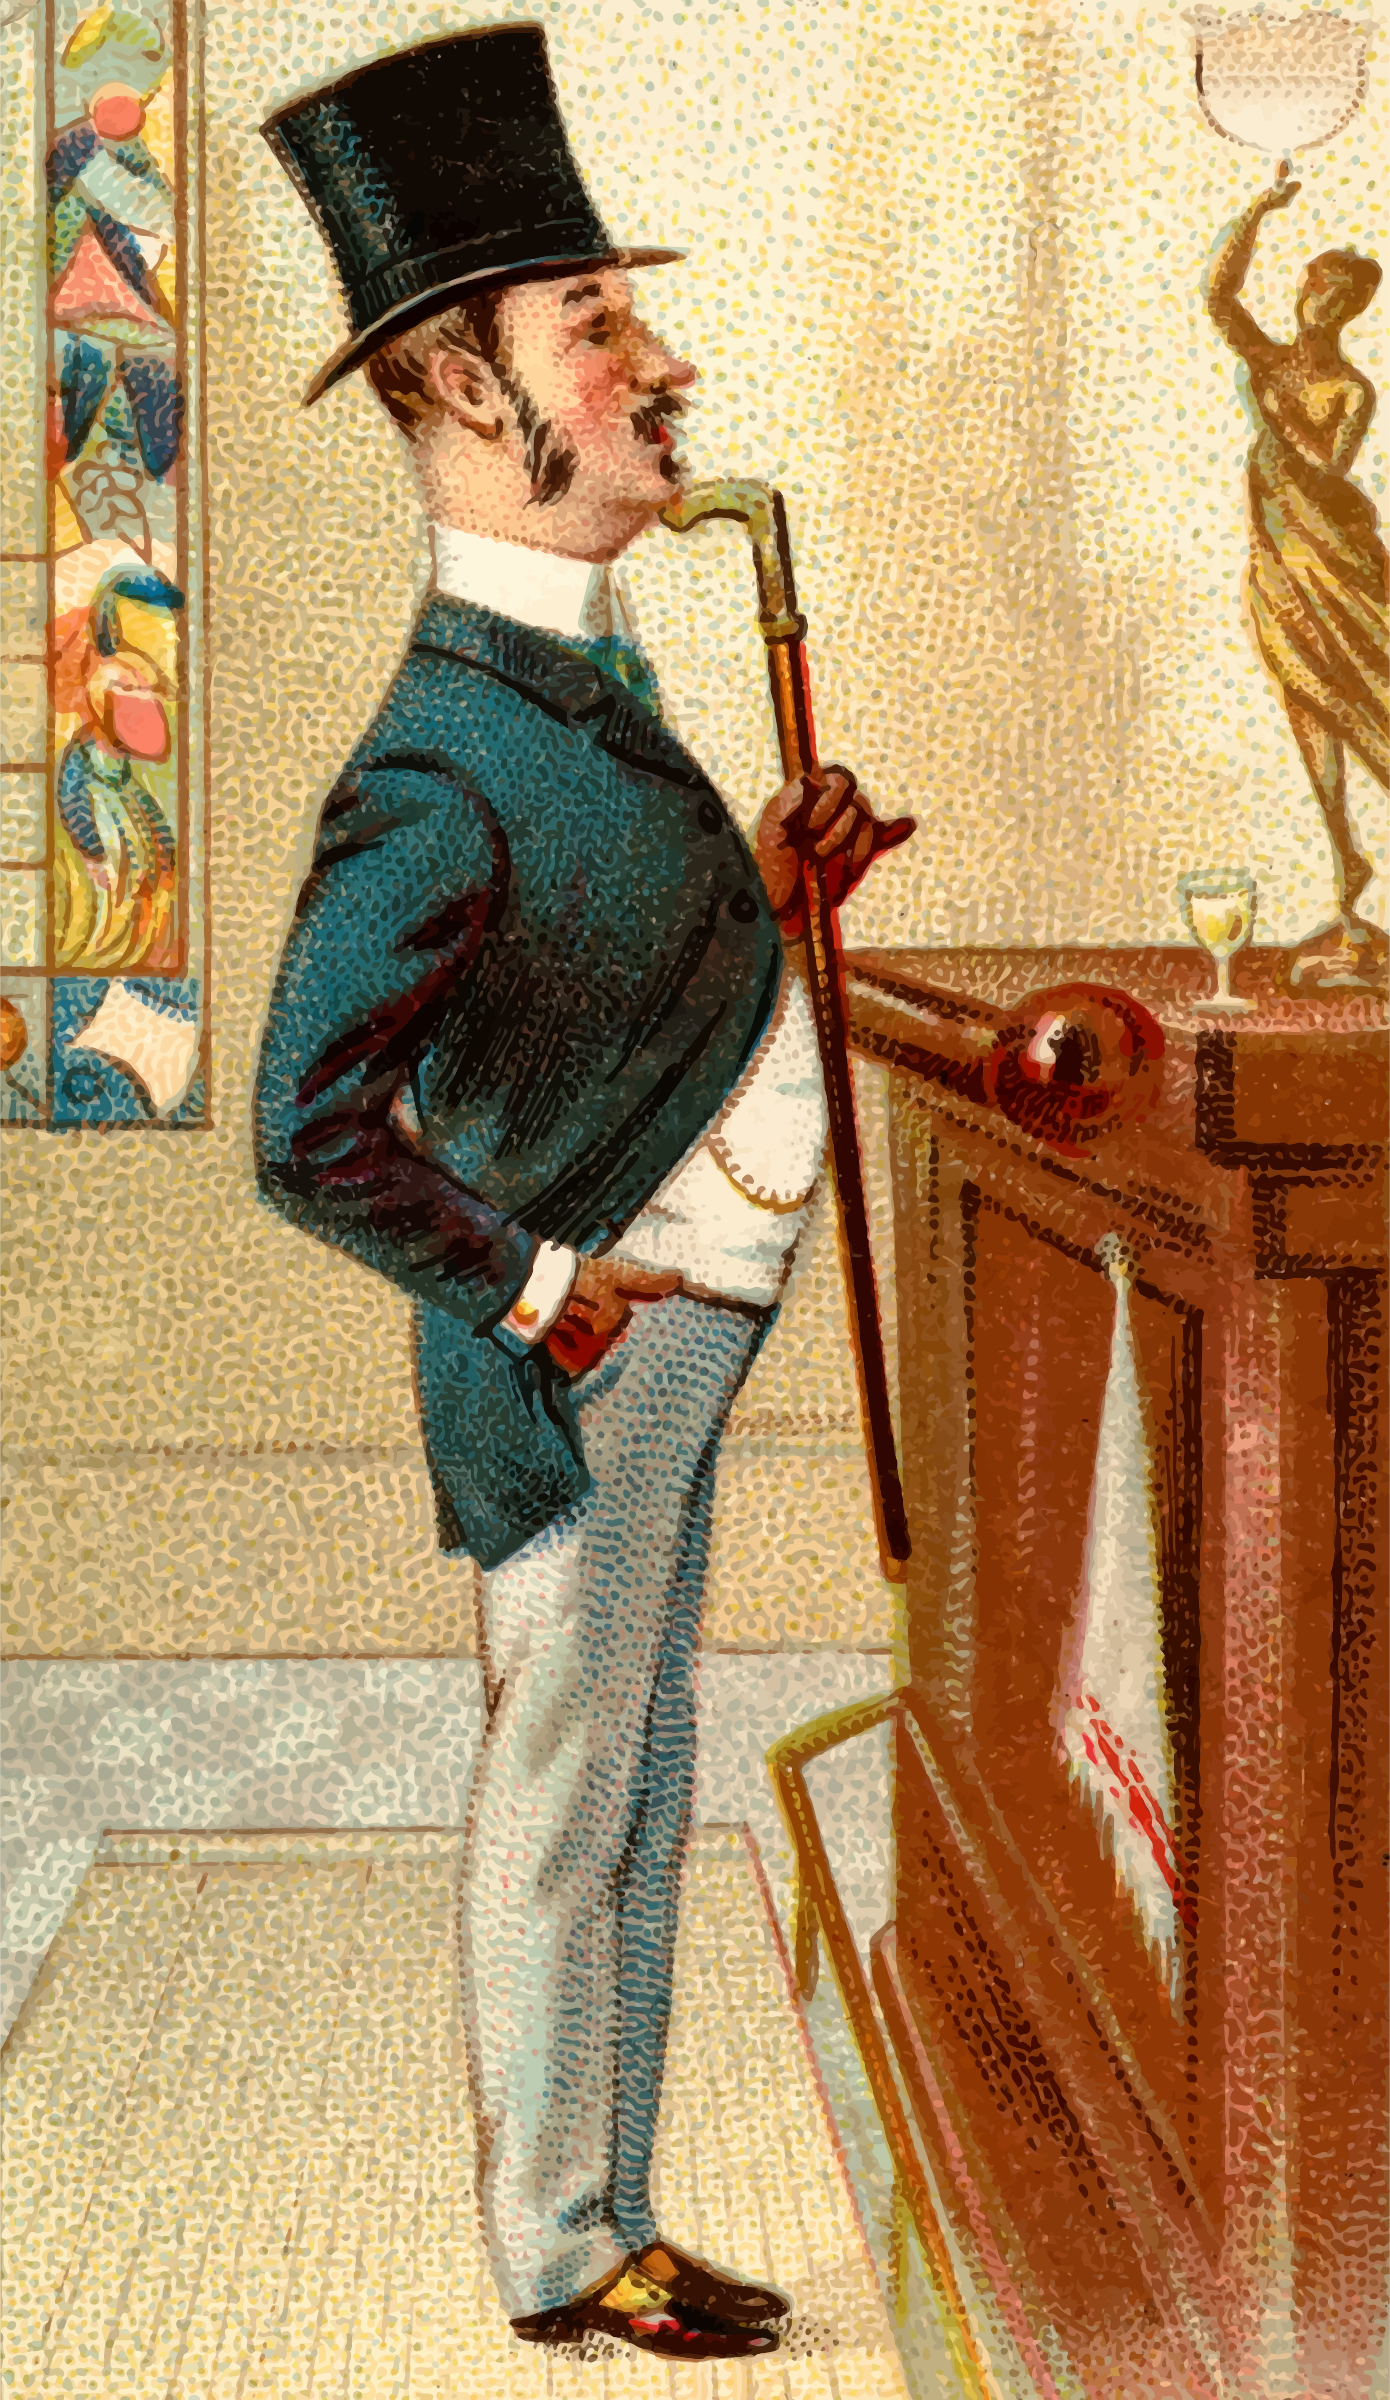 Cigarette card - Hoffman House by Firkin